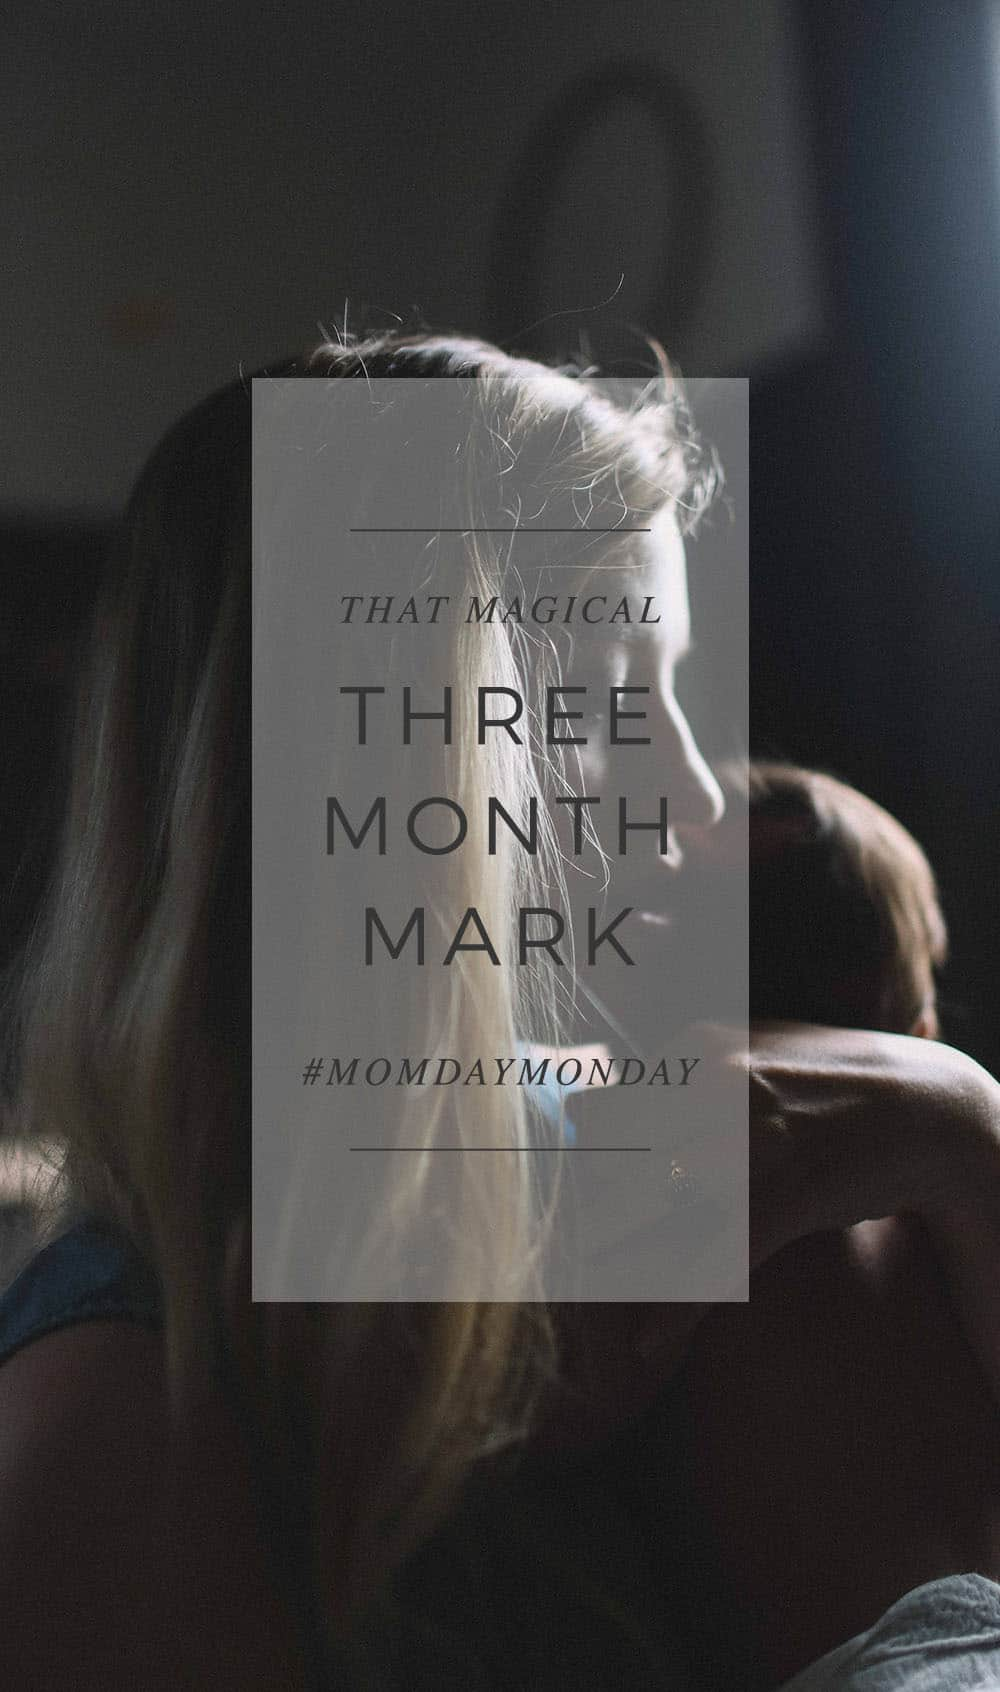 When I was struggling during that first week with our newborn, everyone would say that the first week is the worst and the first three months are bad. After that, it DOES get easier. And they were right. So, on this #MomdayMonday, let's talk about that magical three month mark.